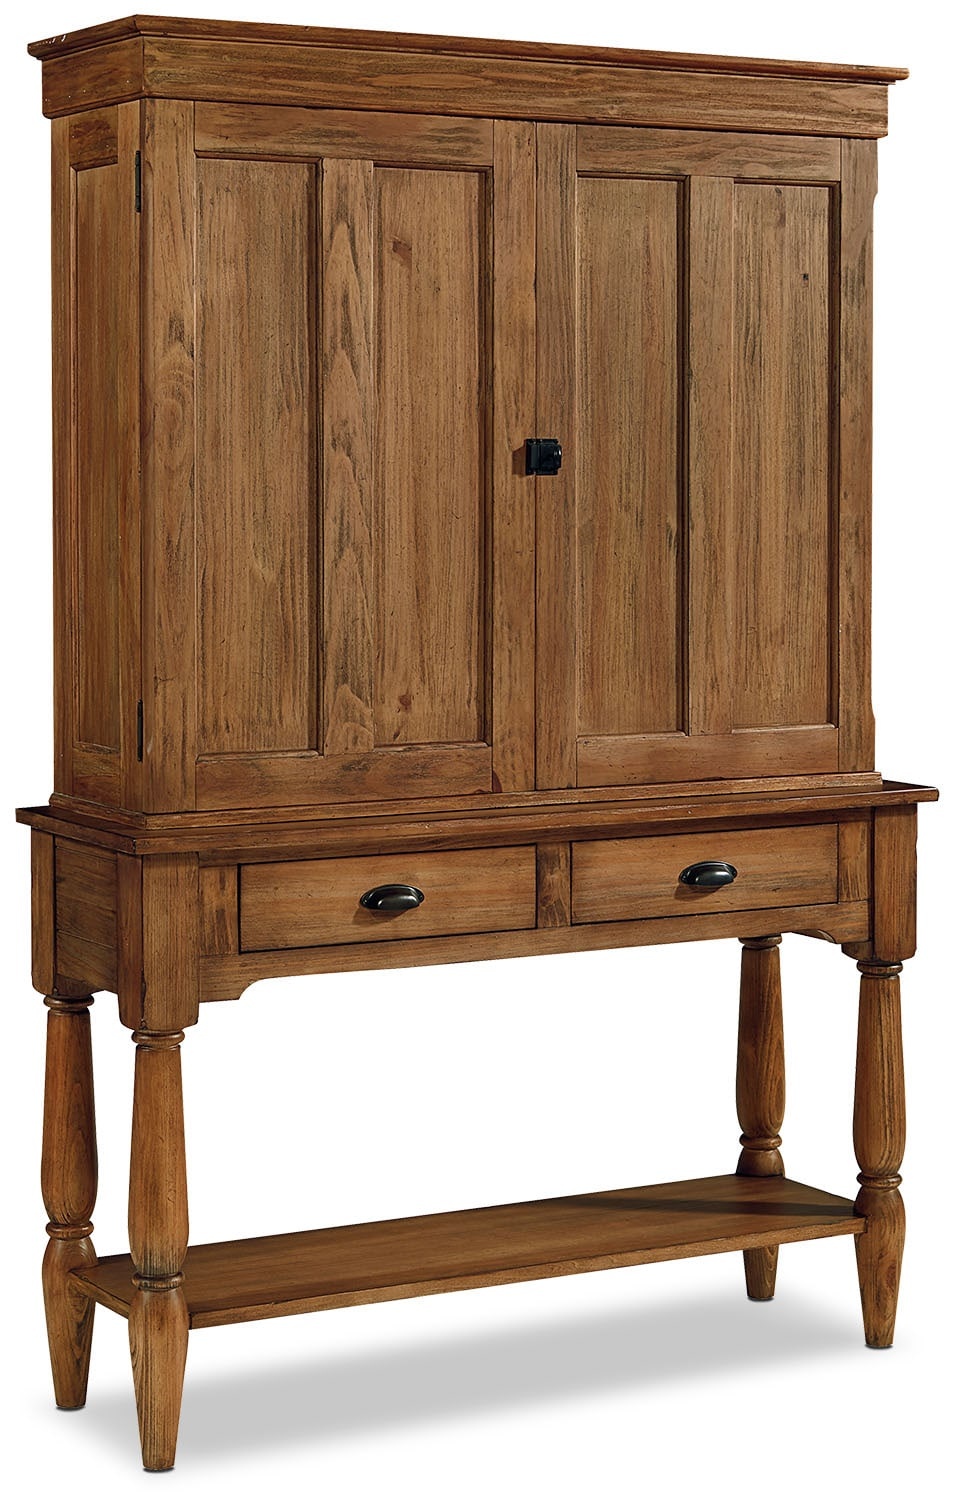 Dining Room Furniture - Primitive Console and Hutch - Bench